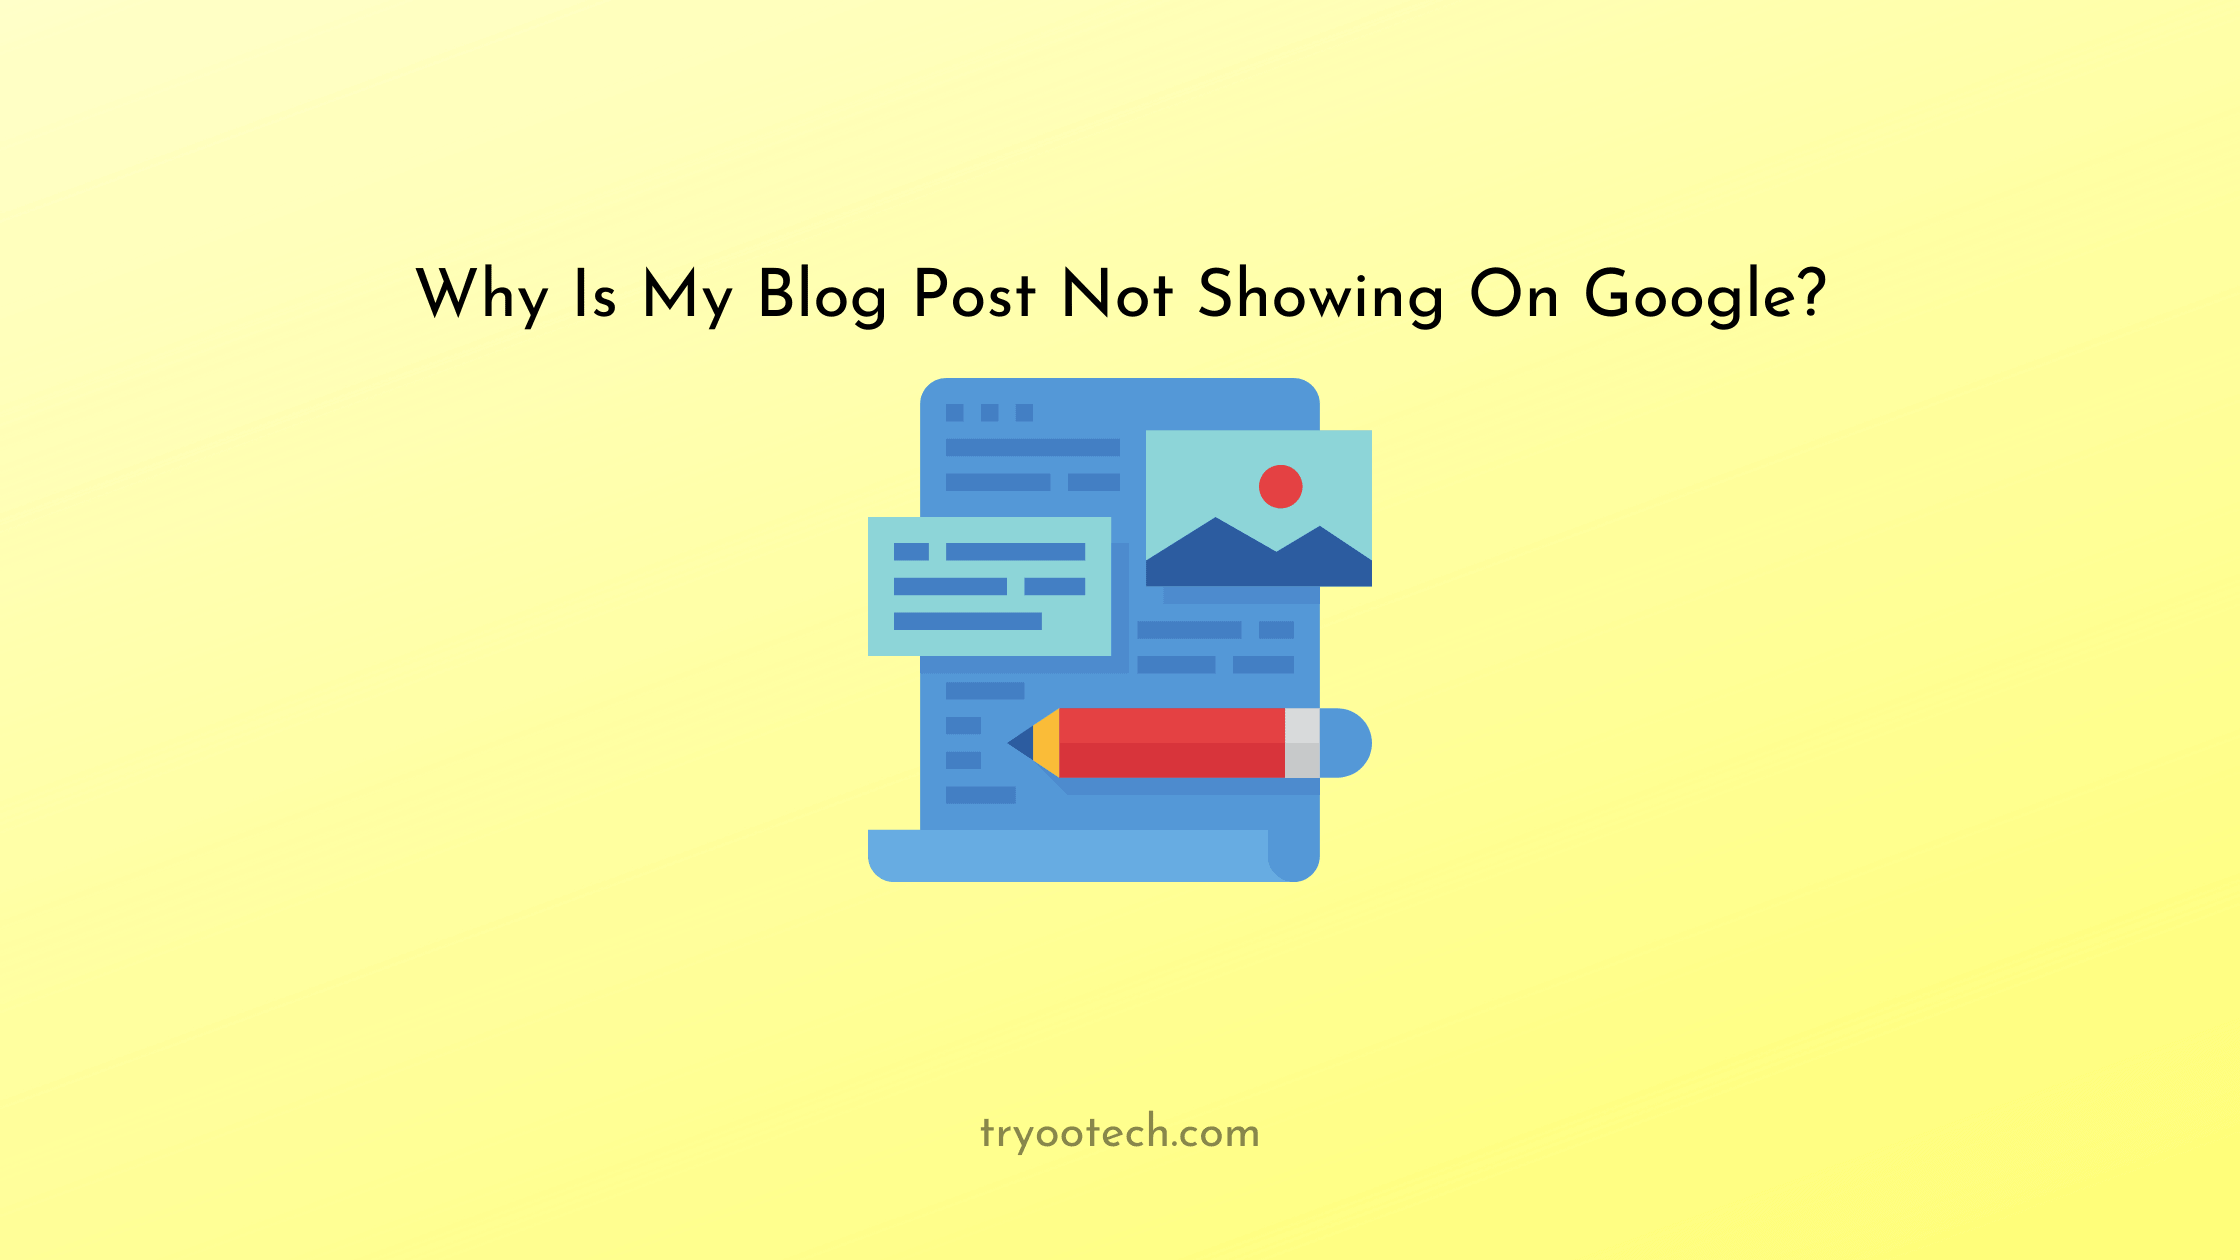 Why Is My Blog Post Not Showing On Google?